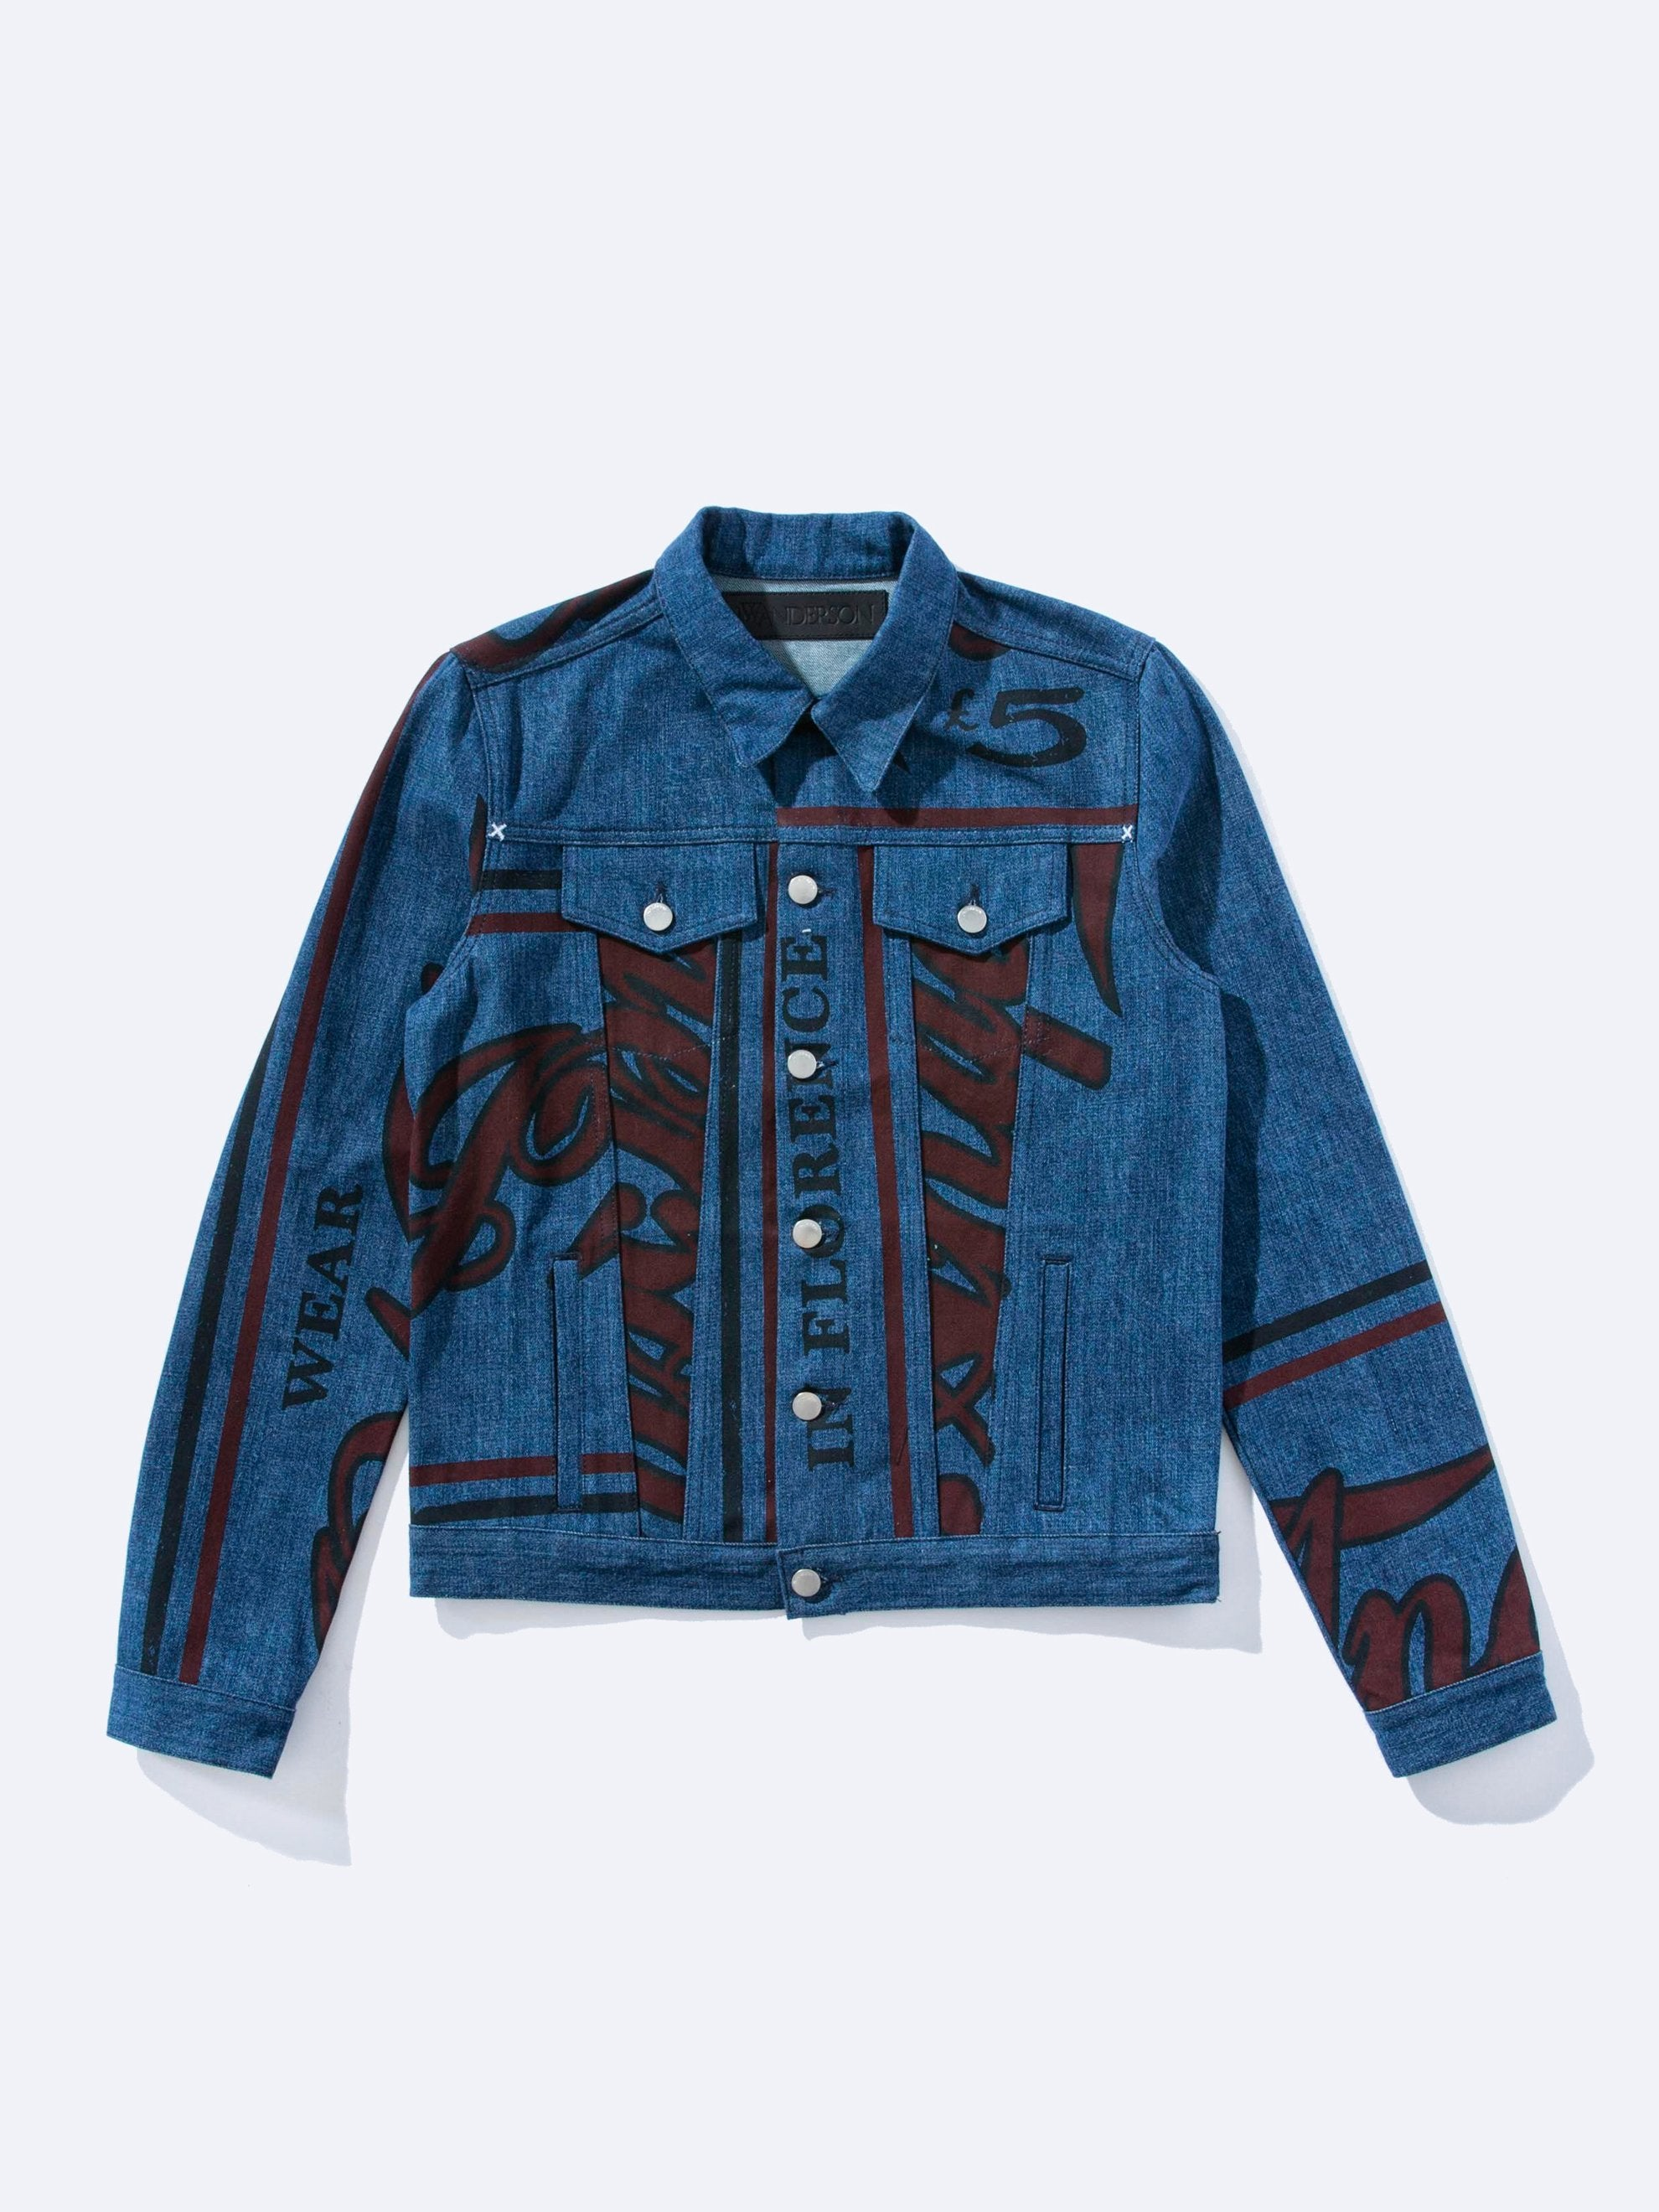 Printed Denim Wear JWA in Florence Denim Jacket 1